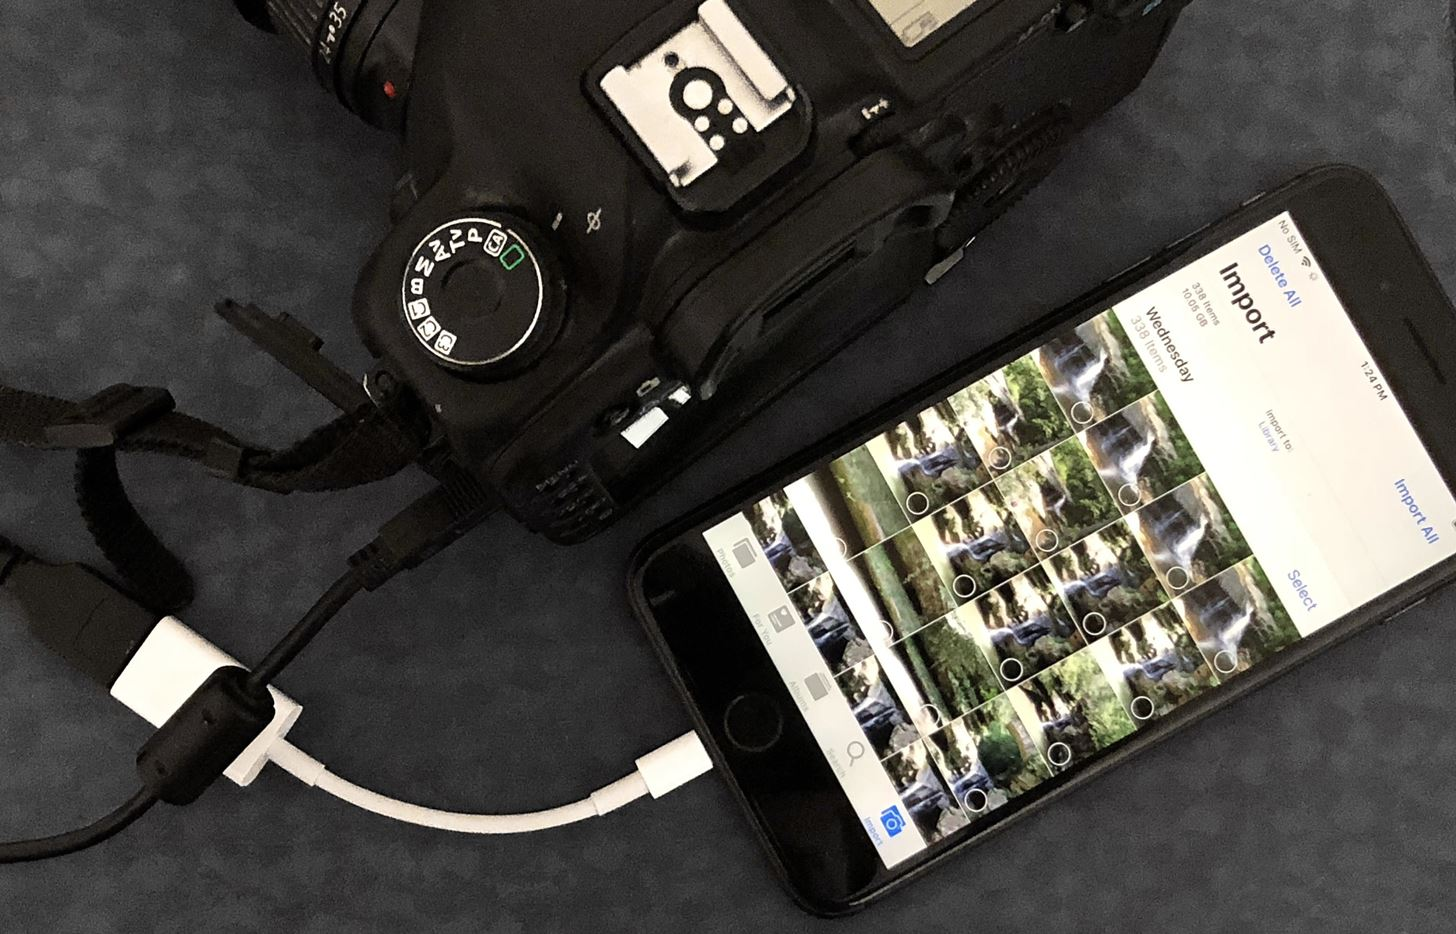 2018 Presentation Guide: Must Have Phone Accessories for Photographers